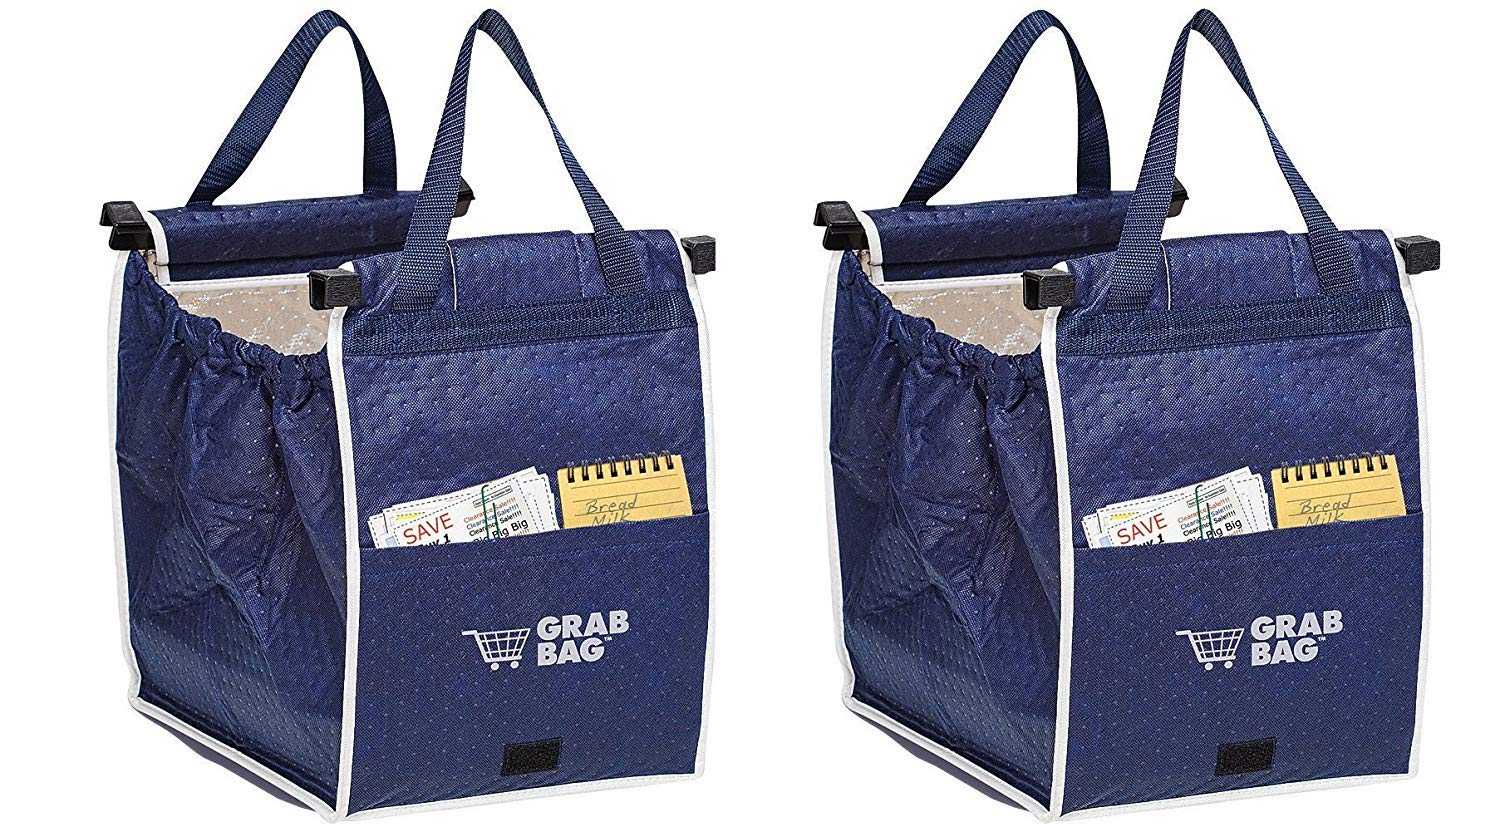 bd298913a Amazon.com: Insulated Reusable Grab Bag Grocery Shopping Tote Holds Up To  40 lbs (3): Kitchen & Dining